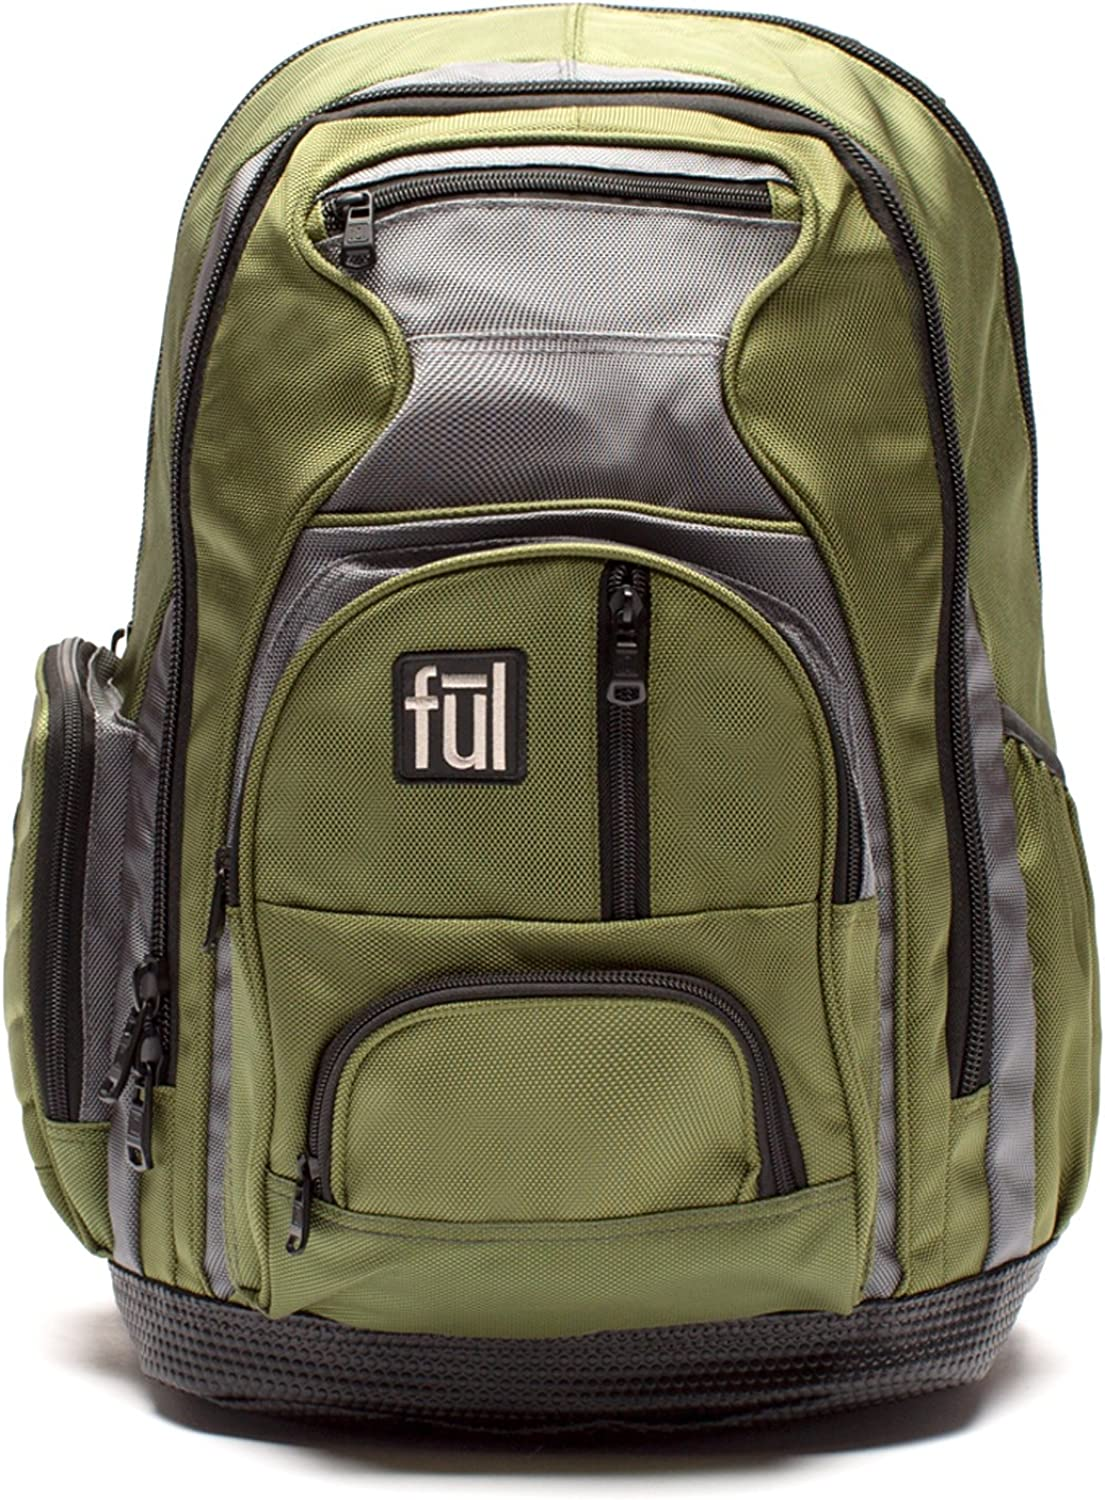 Ful Free Fallin Padded Laptop Backpack, Fits Up to 17-Inch Laptops, Green, Unisex